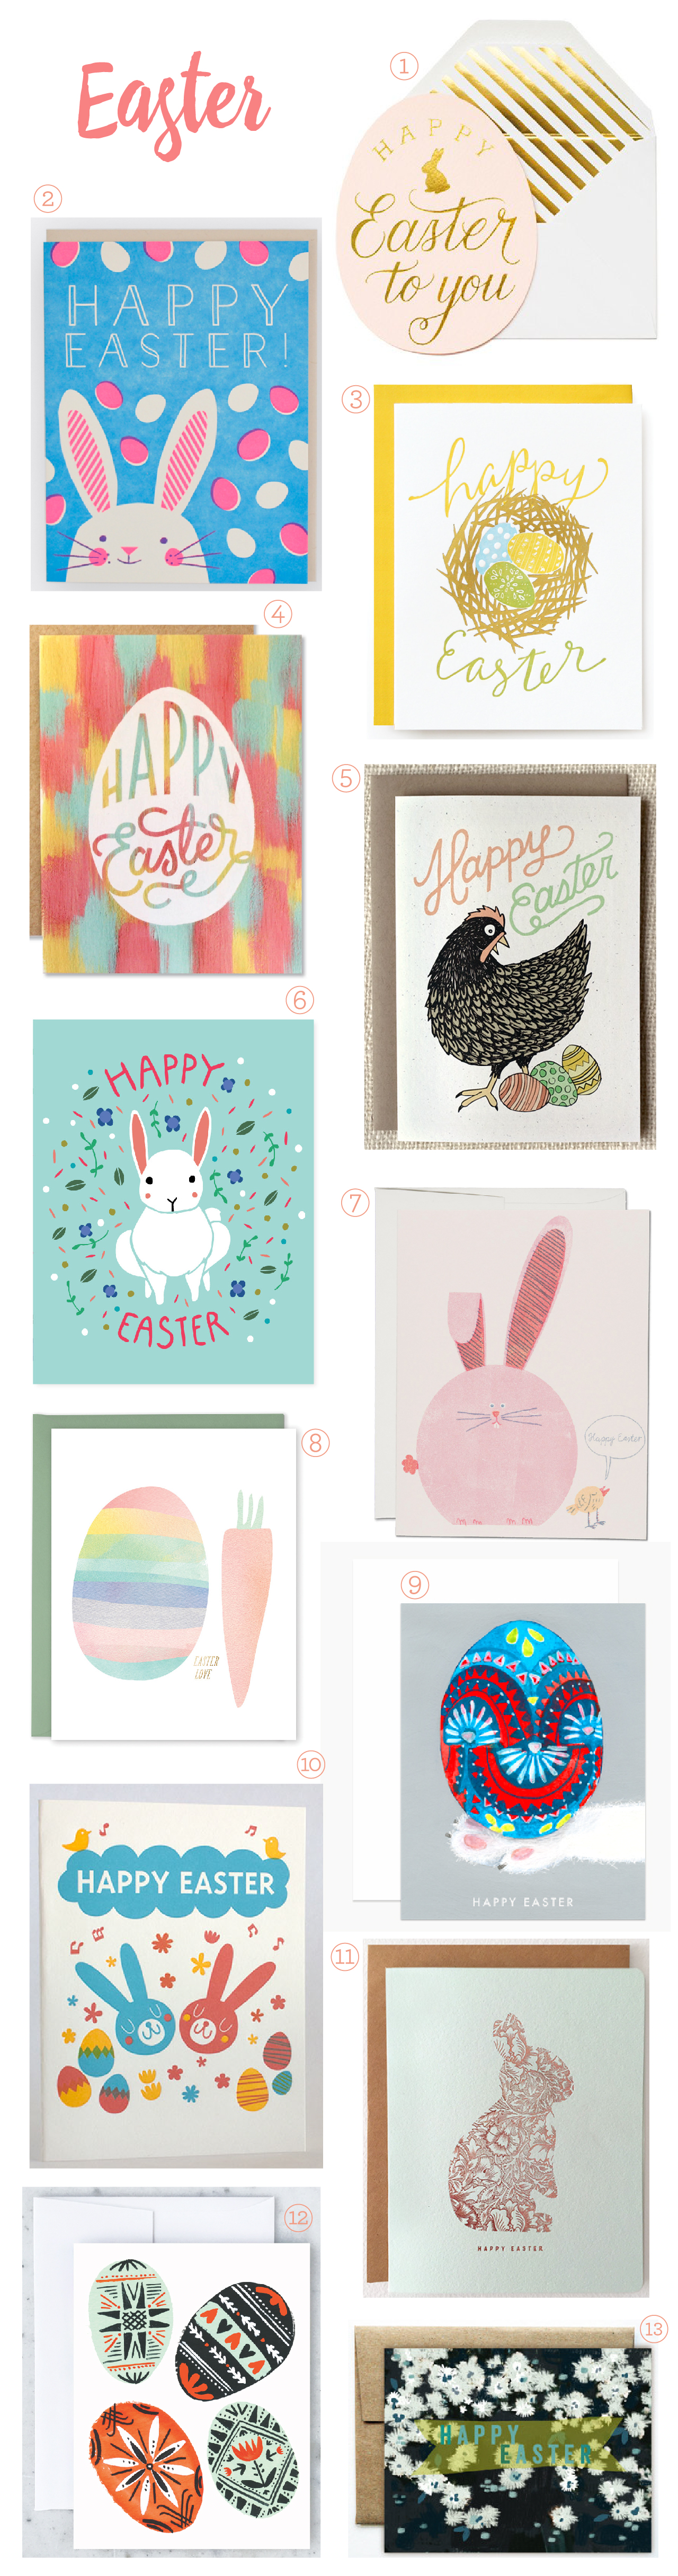 Seasonal Stationery: Easter Card Round Up